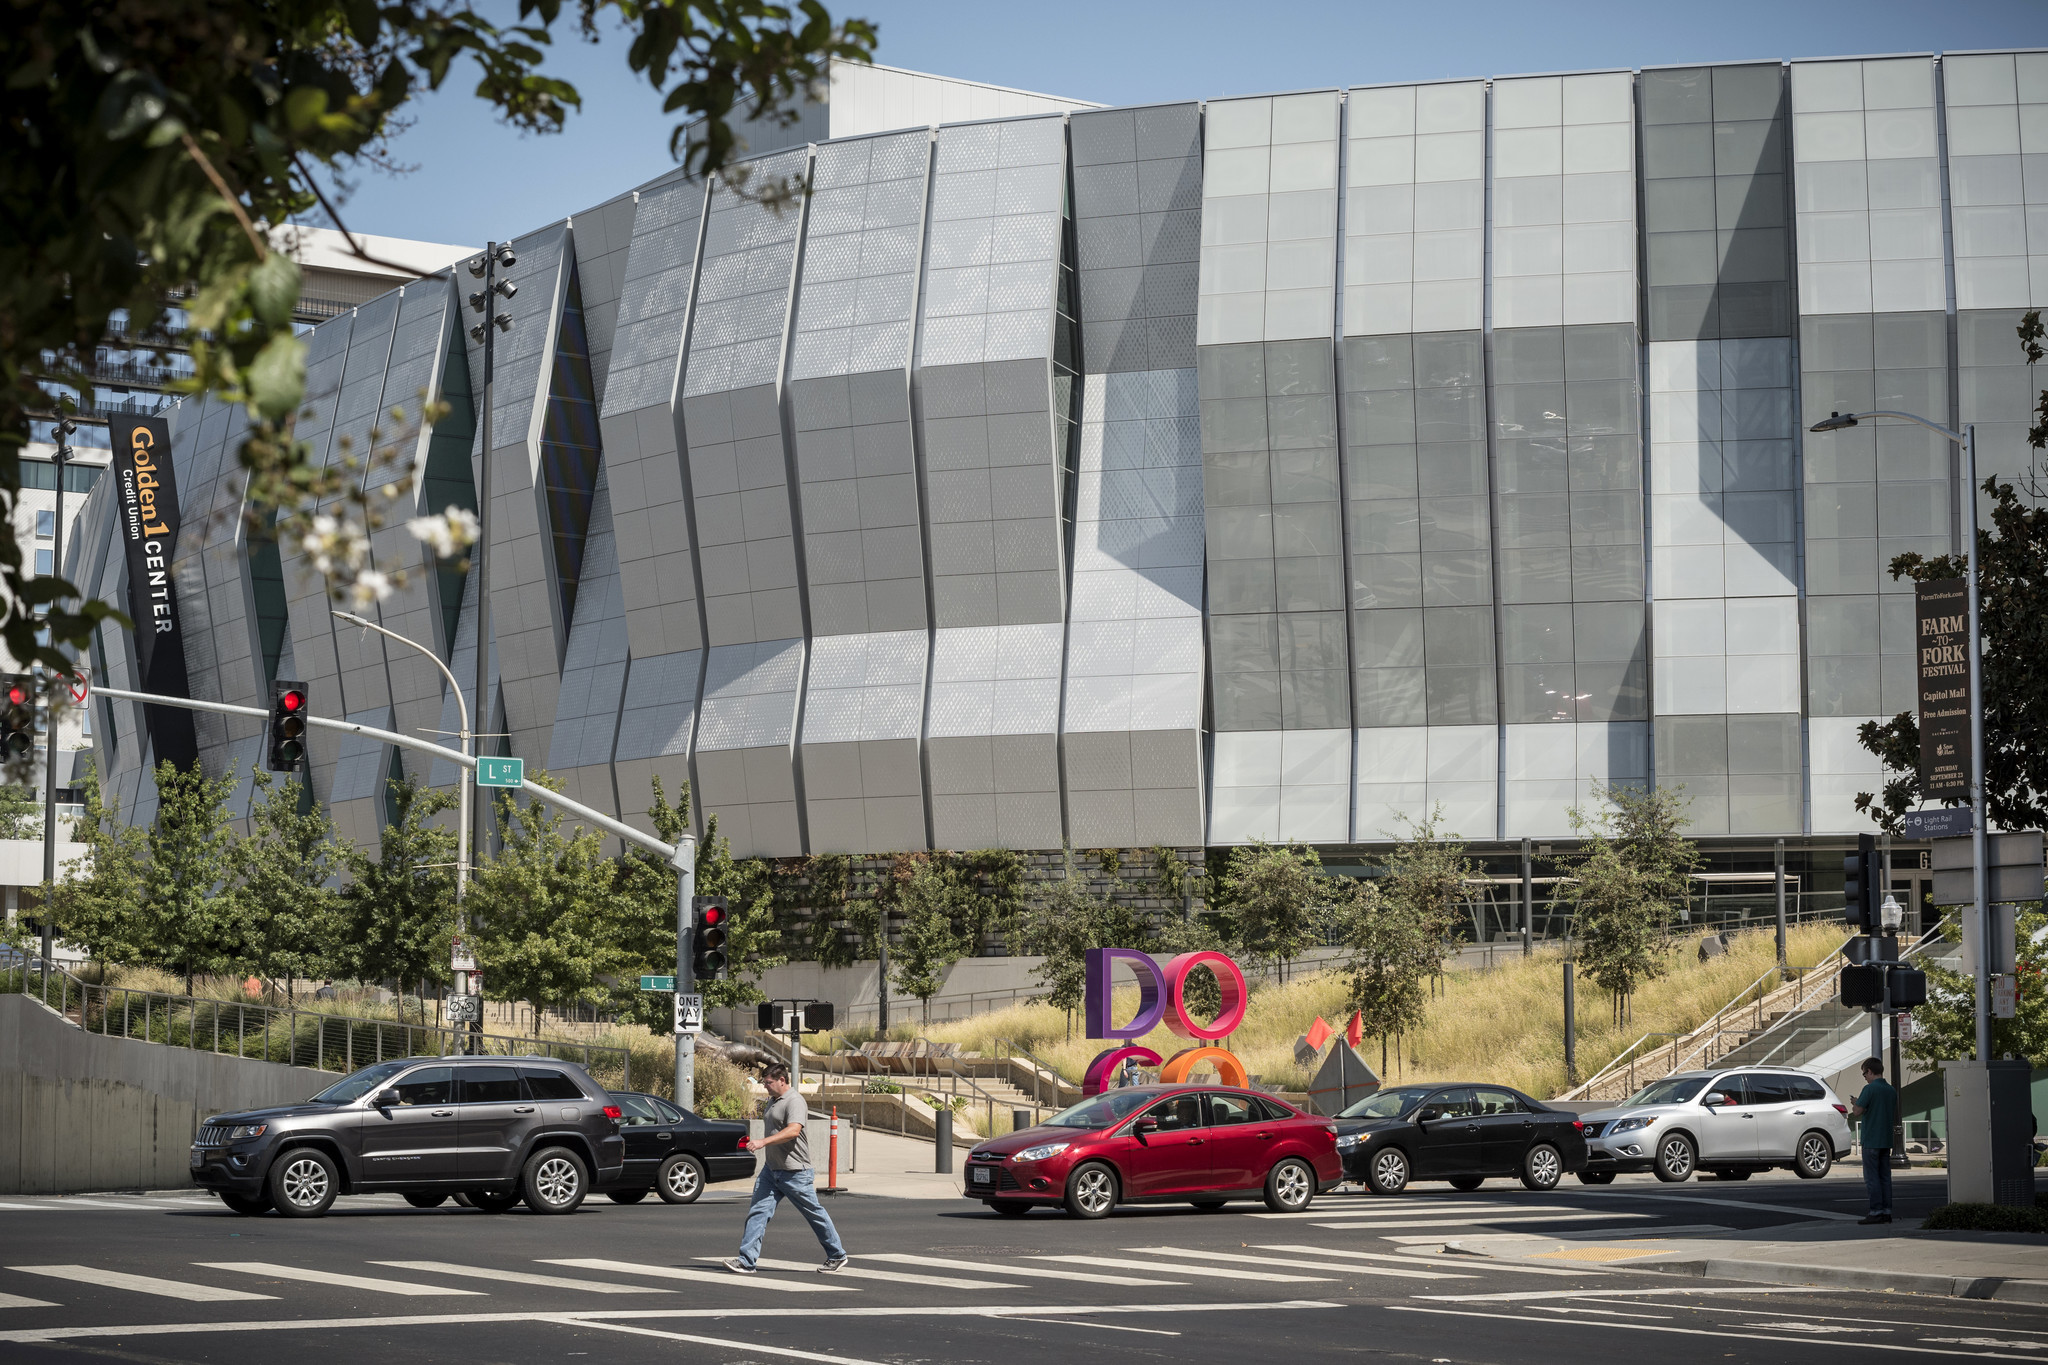 Golden 1 Center in downtown Sacramento is home to the Kings basketball team and also hosts many concerts.